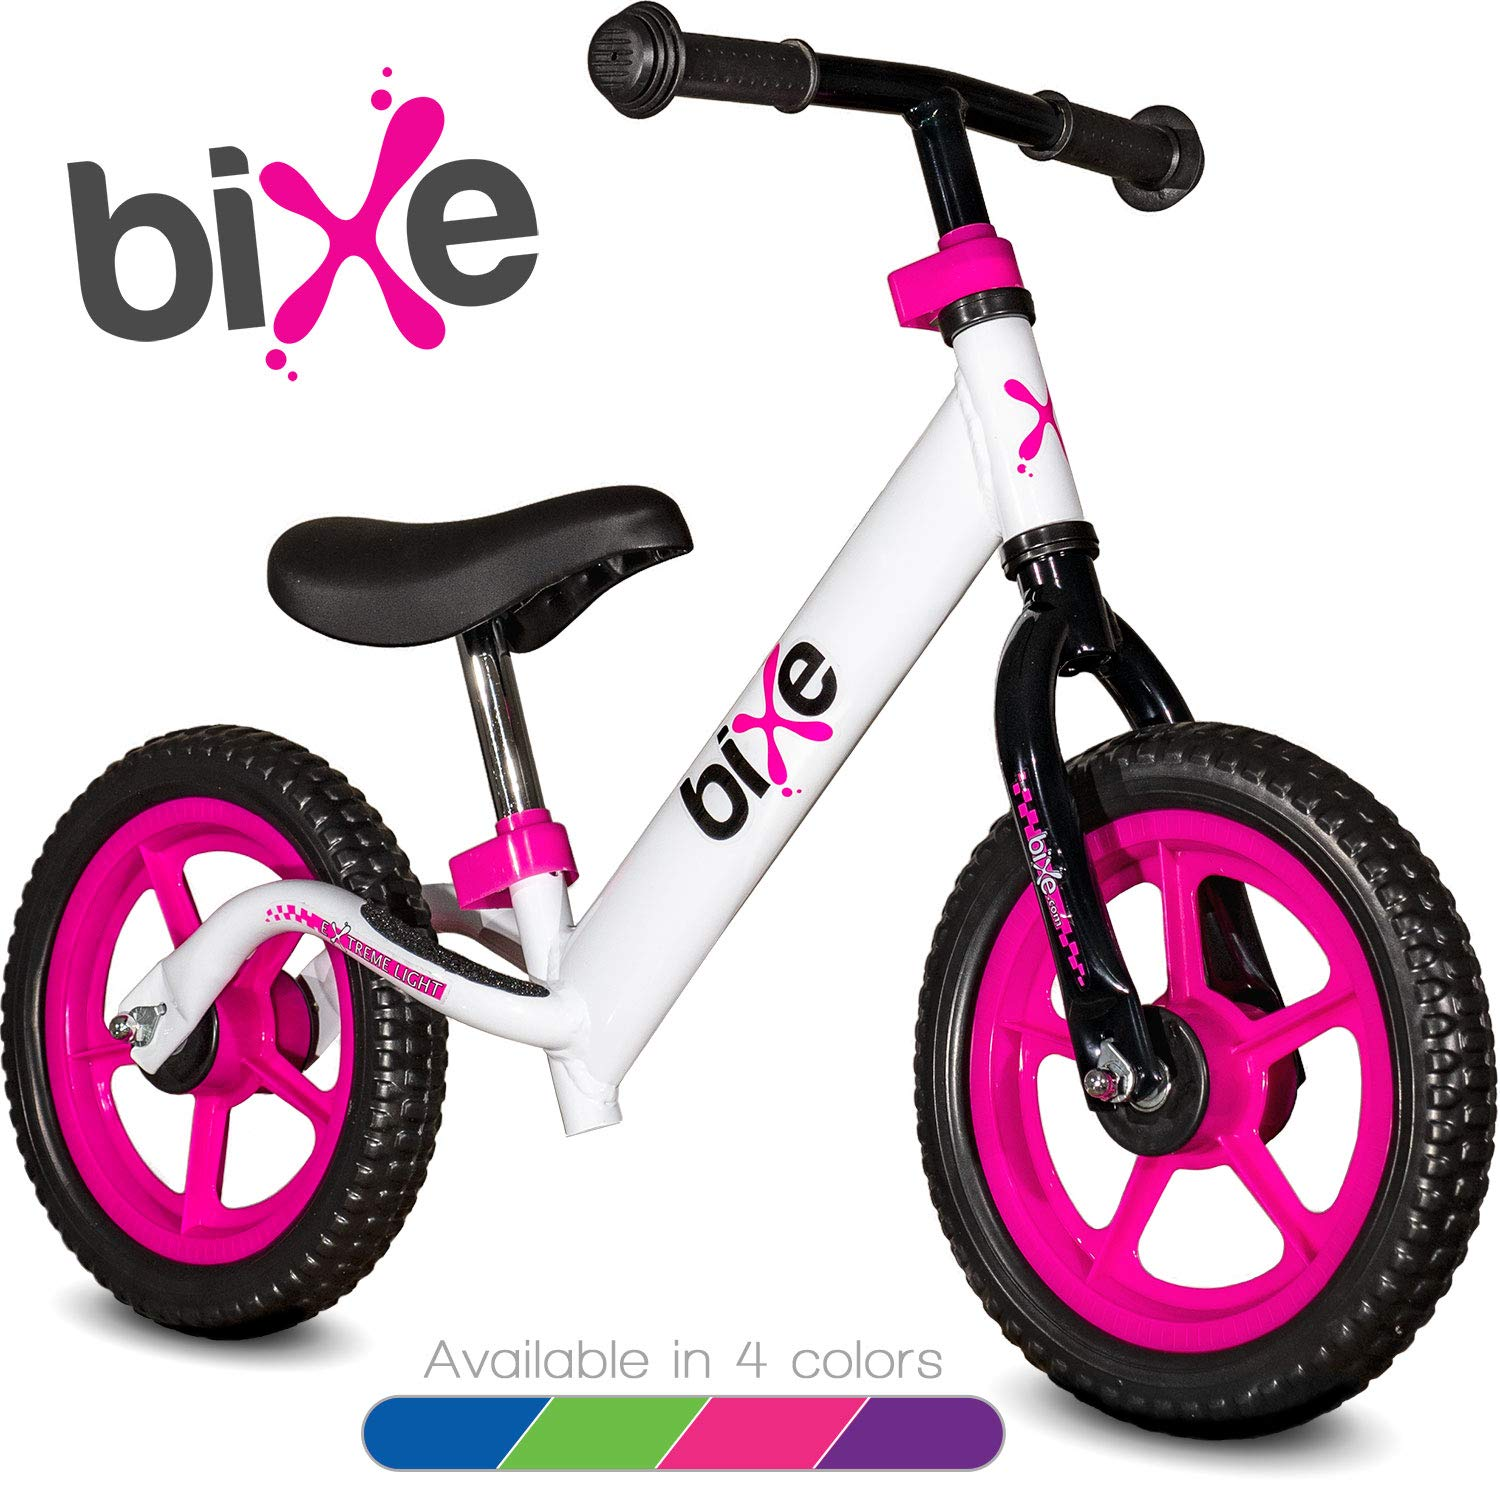 Pink (4LBS) Aluminum Balance Bike for Kids and Toddlers - 12'' No Pedal Sport Training Bicycle for Children Ages 3,4,5,6.